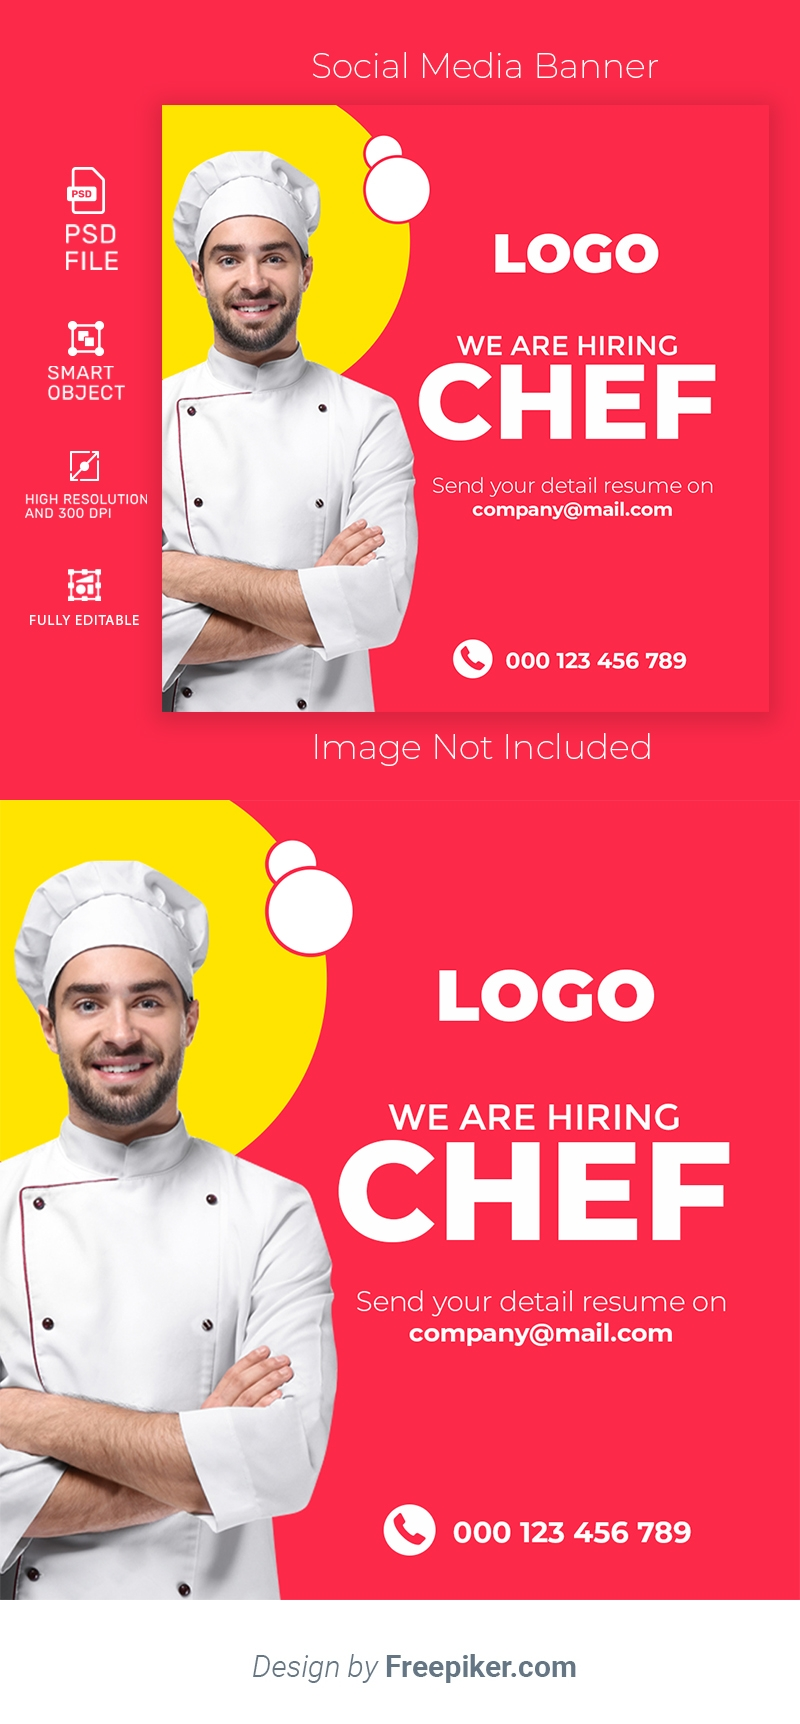 We are hiring chef social media template banner